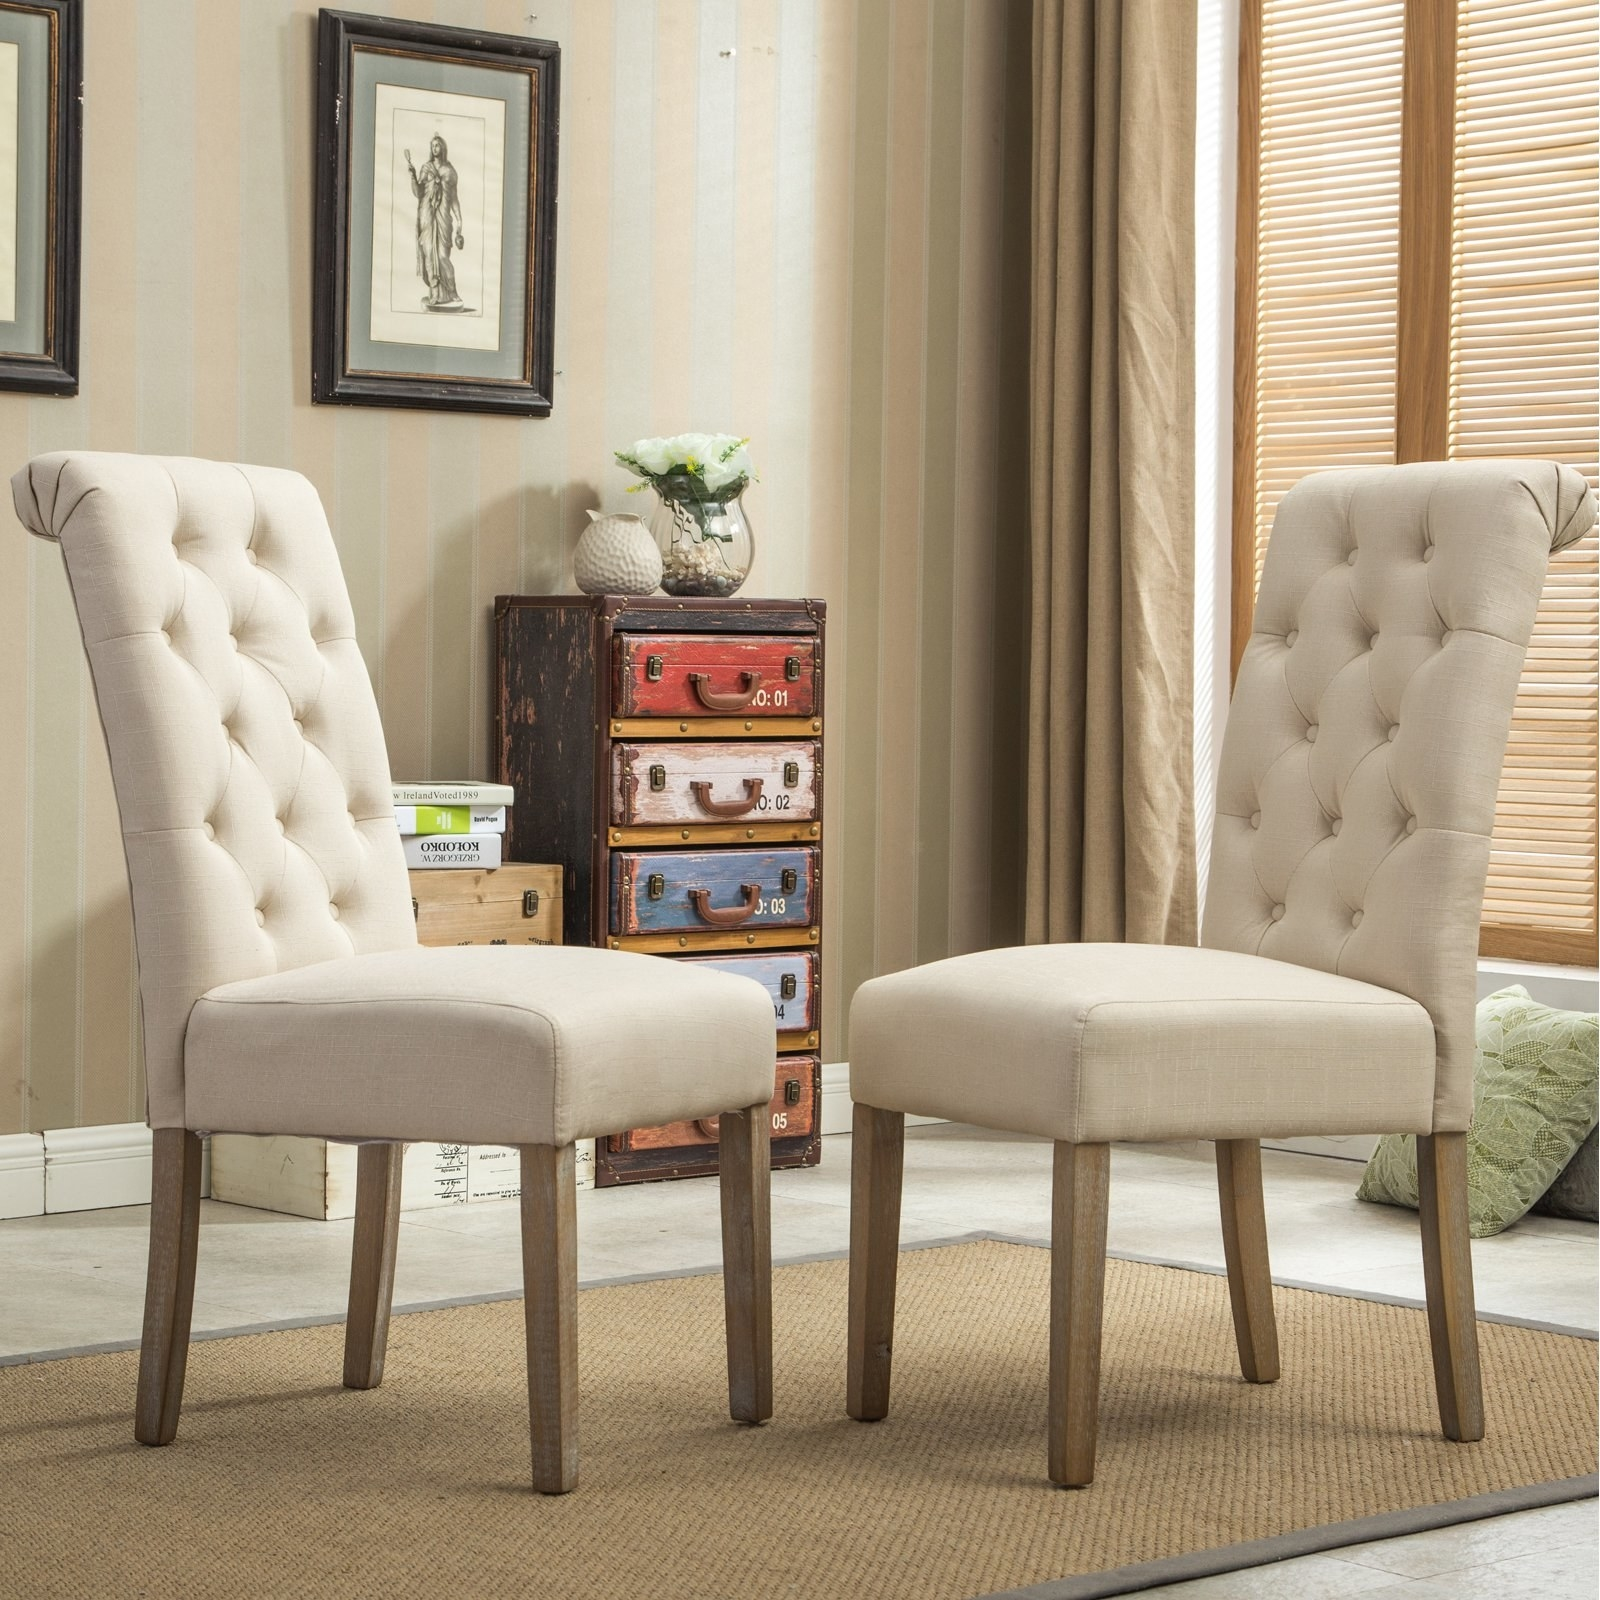 Tufted tan dining chairs